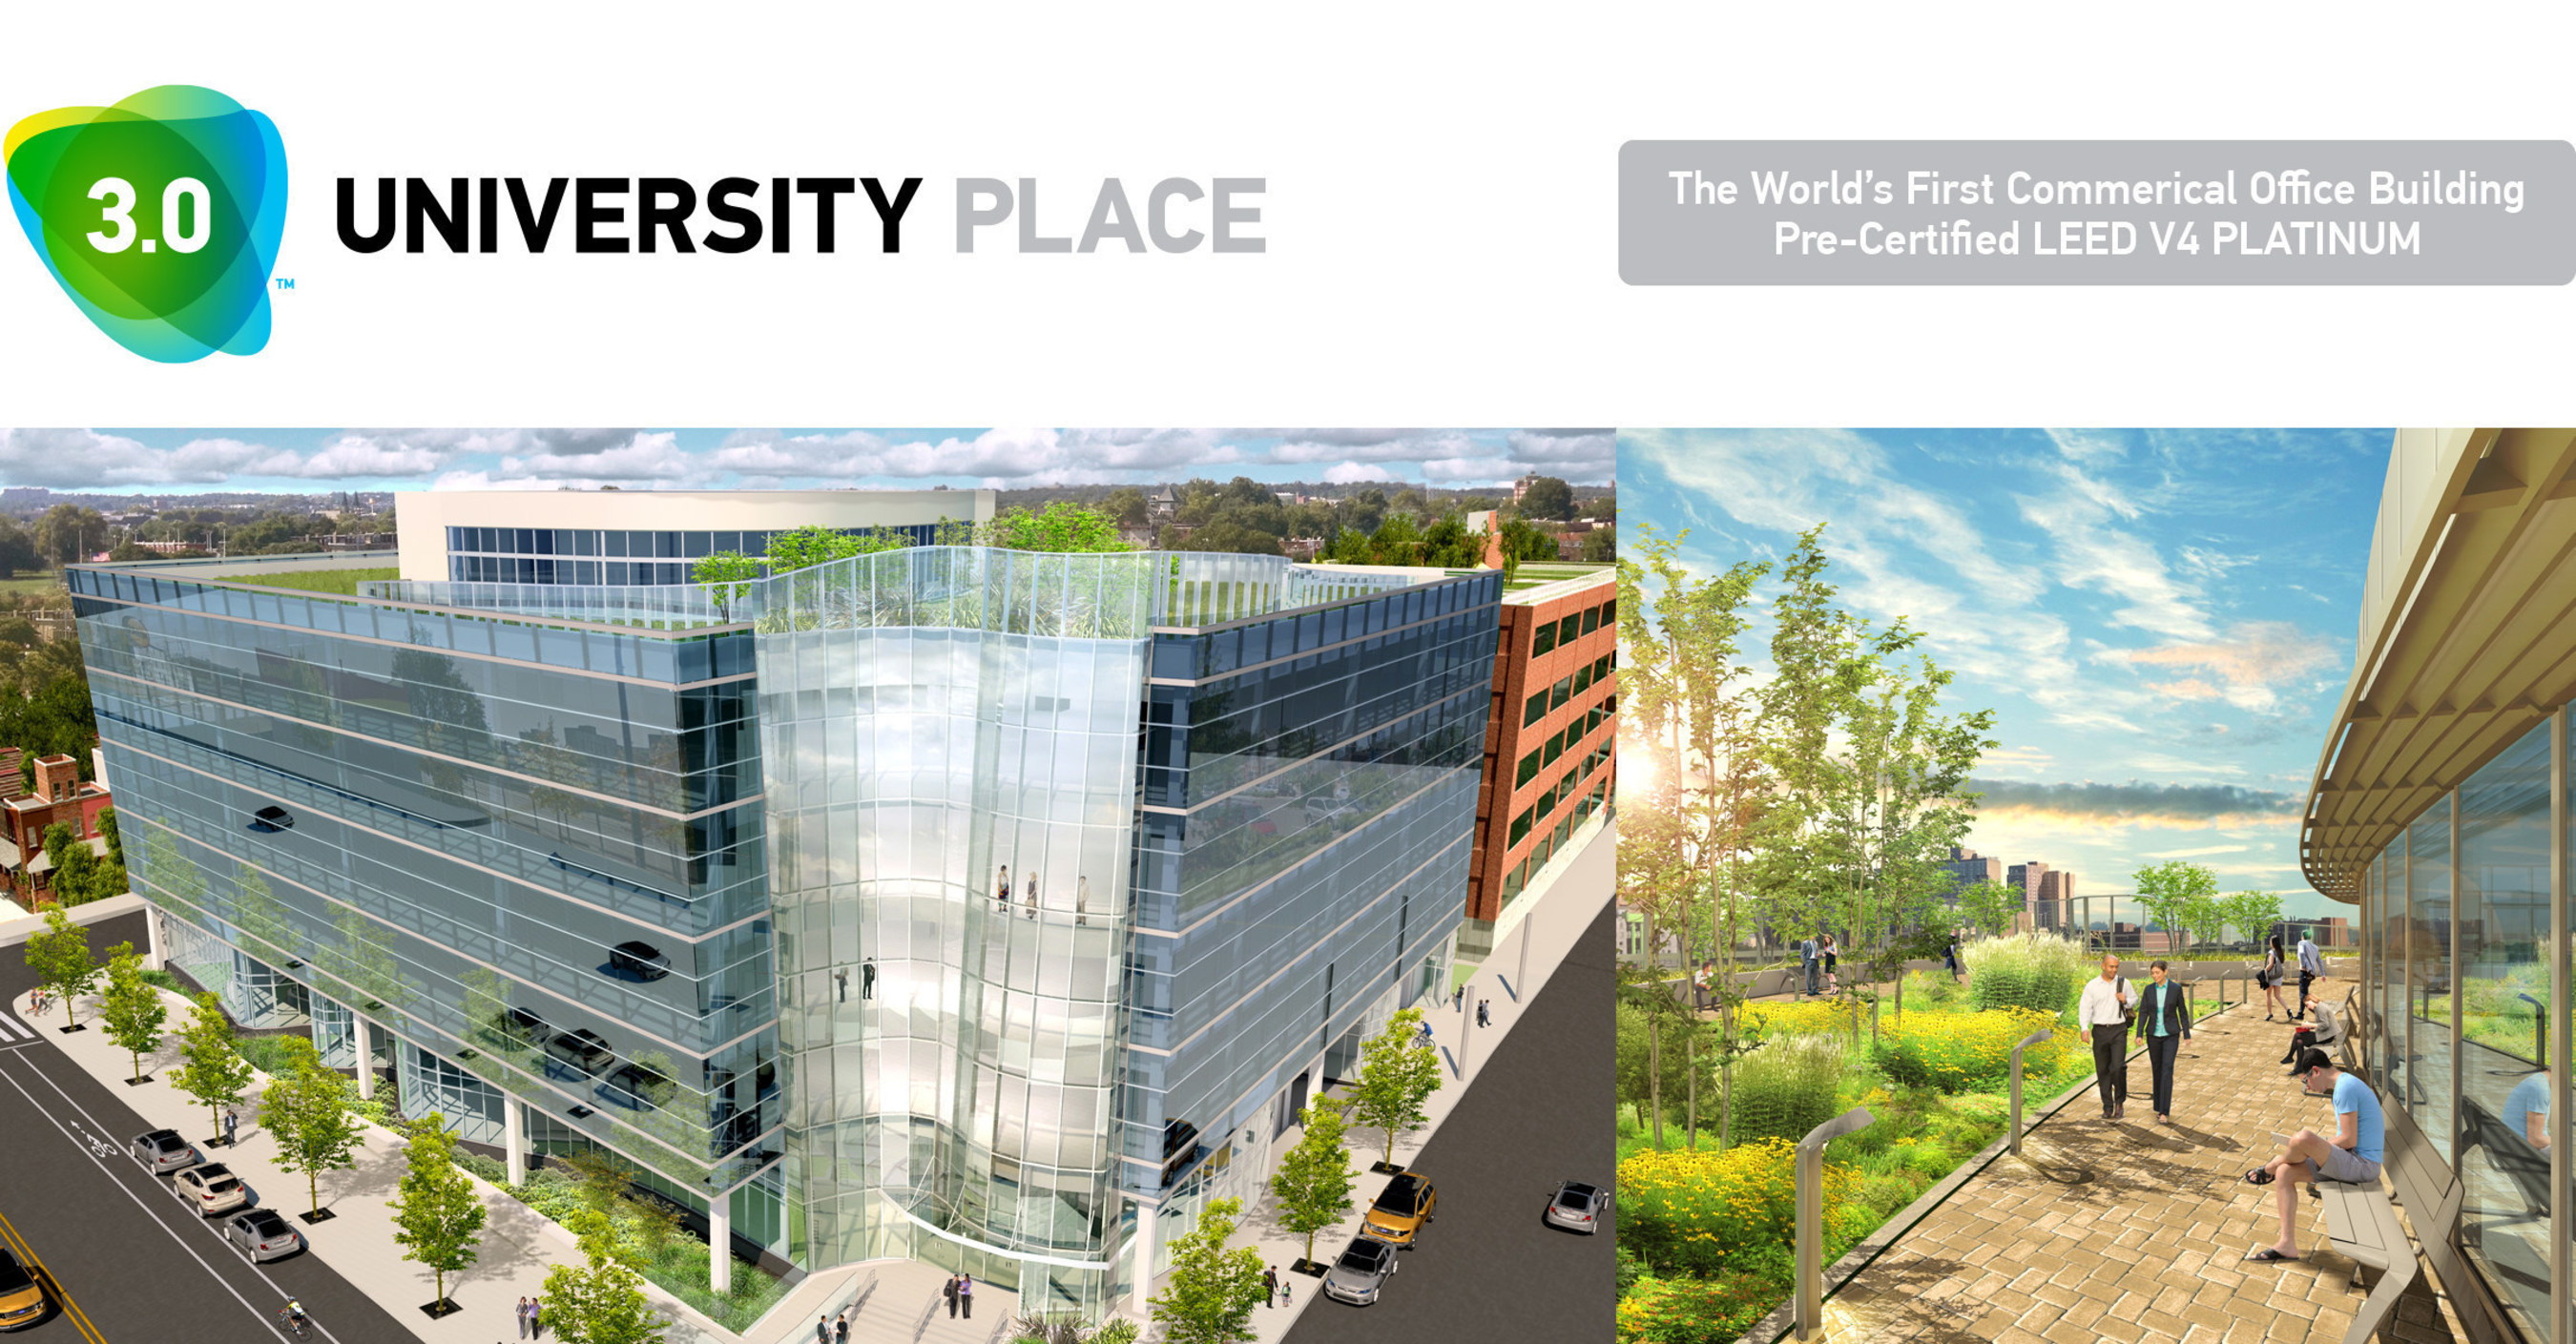 3.0 University Place, Partners with Global Building Products Leader, Saint-Gobain North America, to Build World's First Commercial Office Building Pre-Certified LEED v4